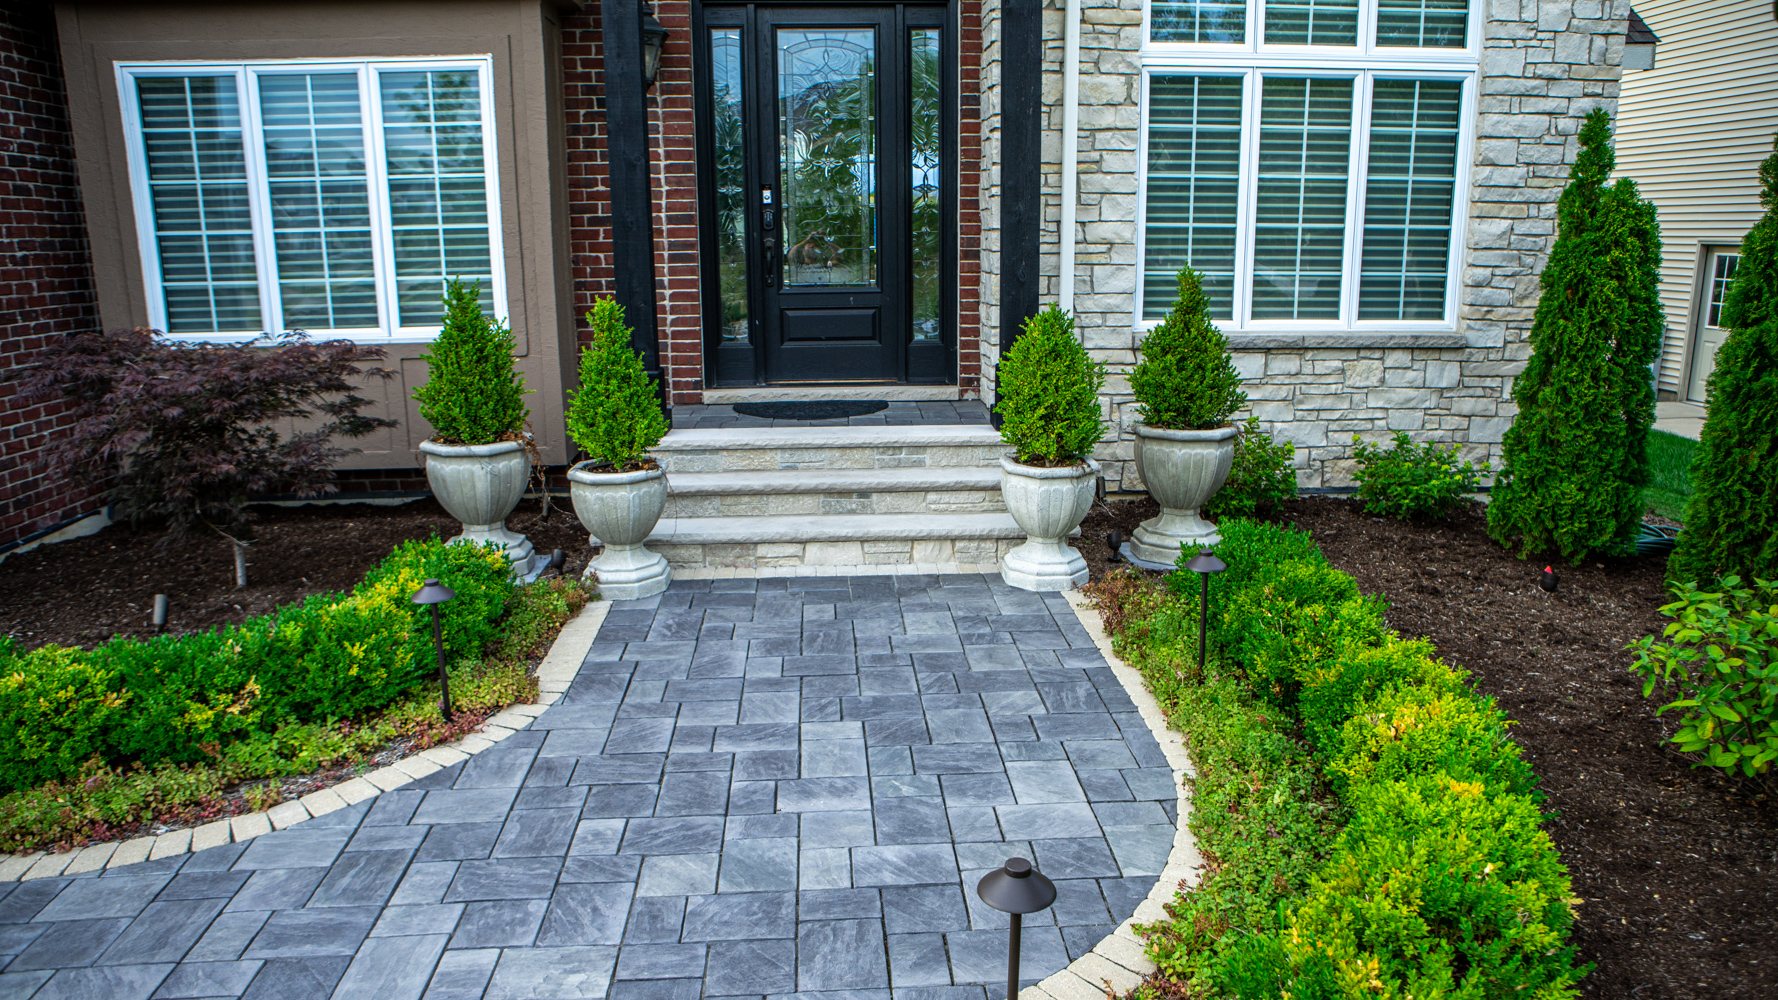 Paver walkway with different color border